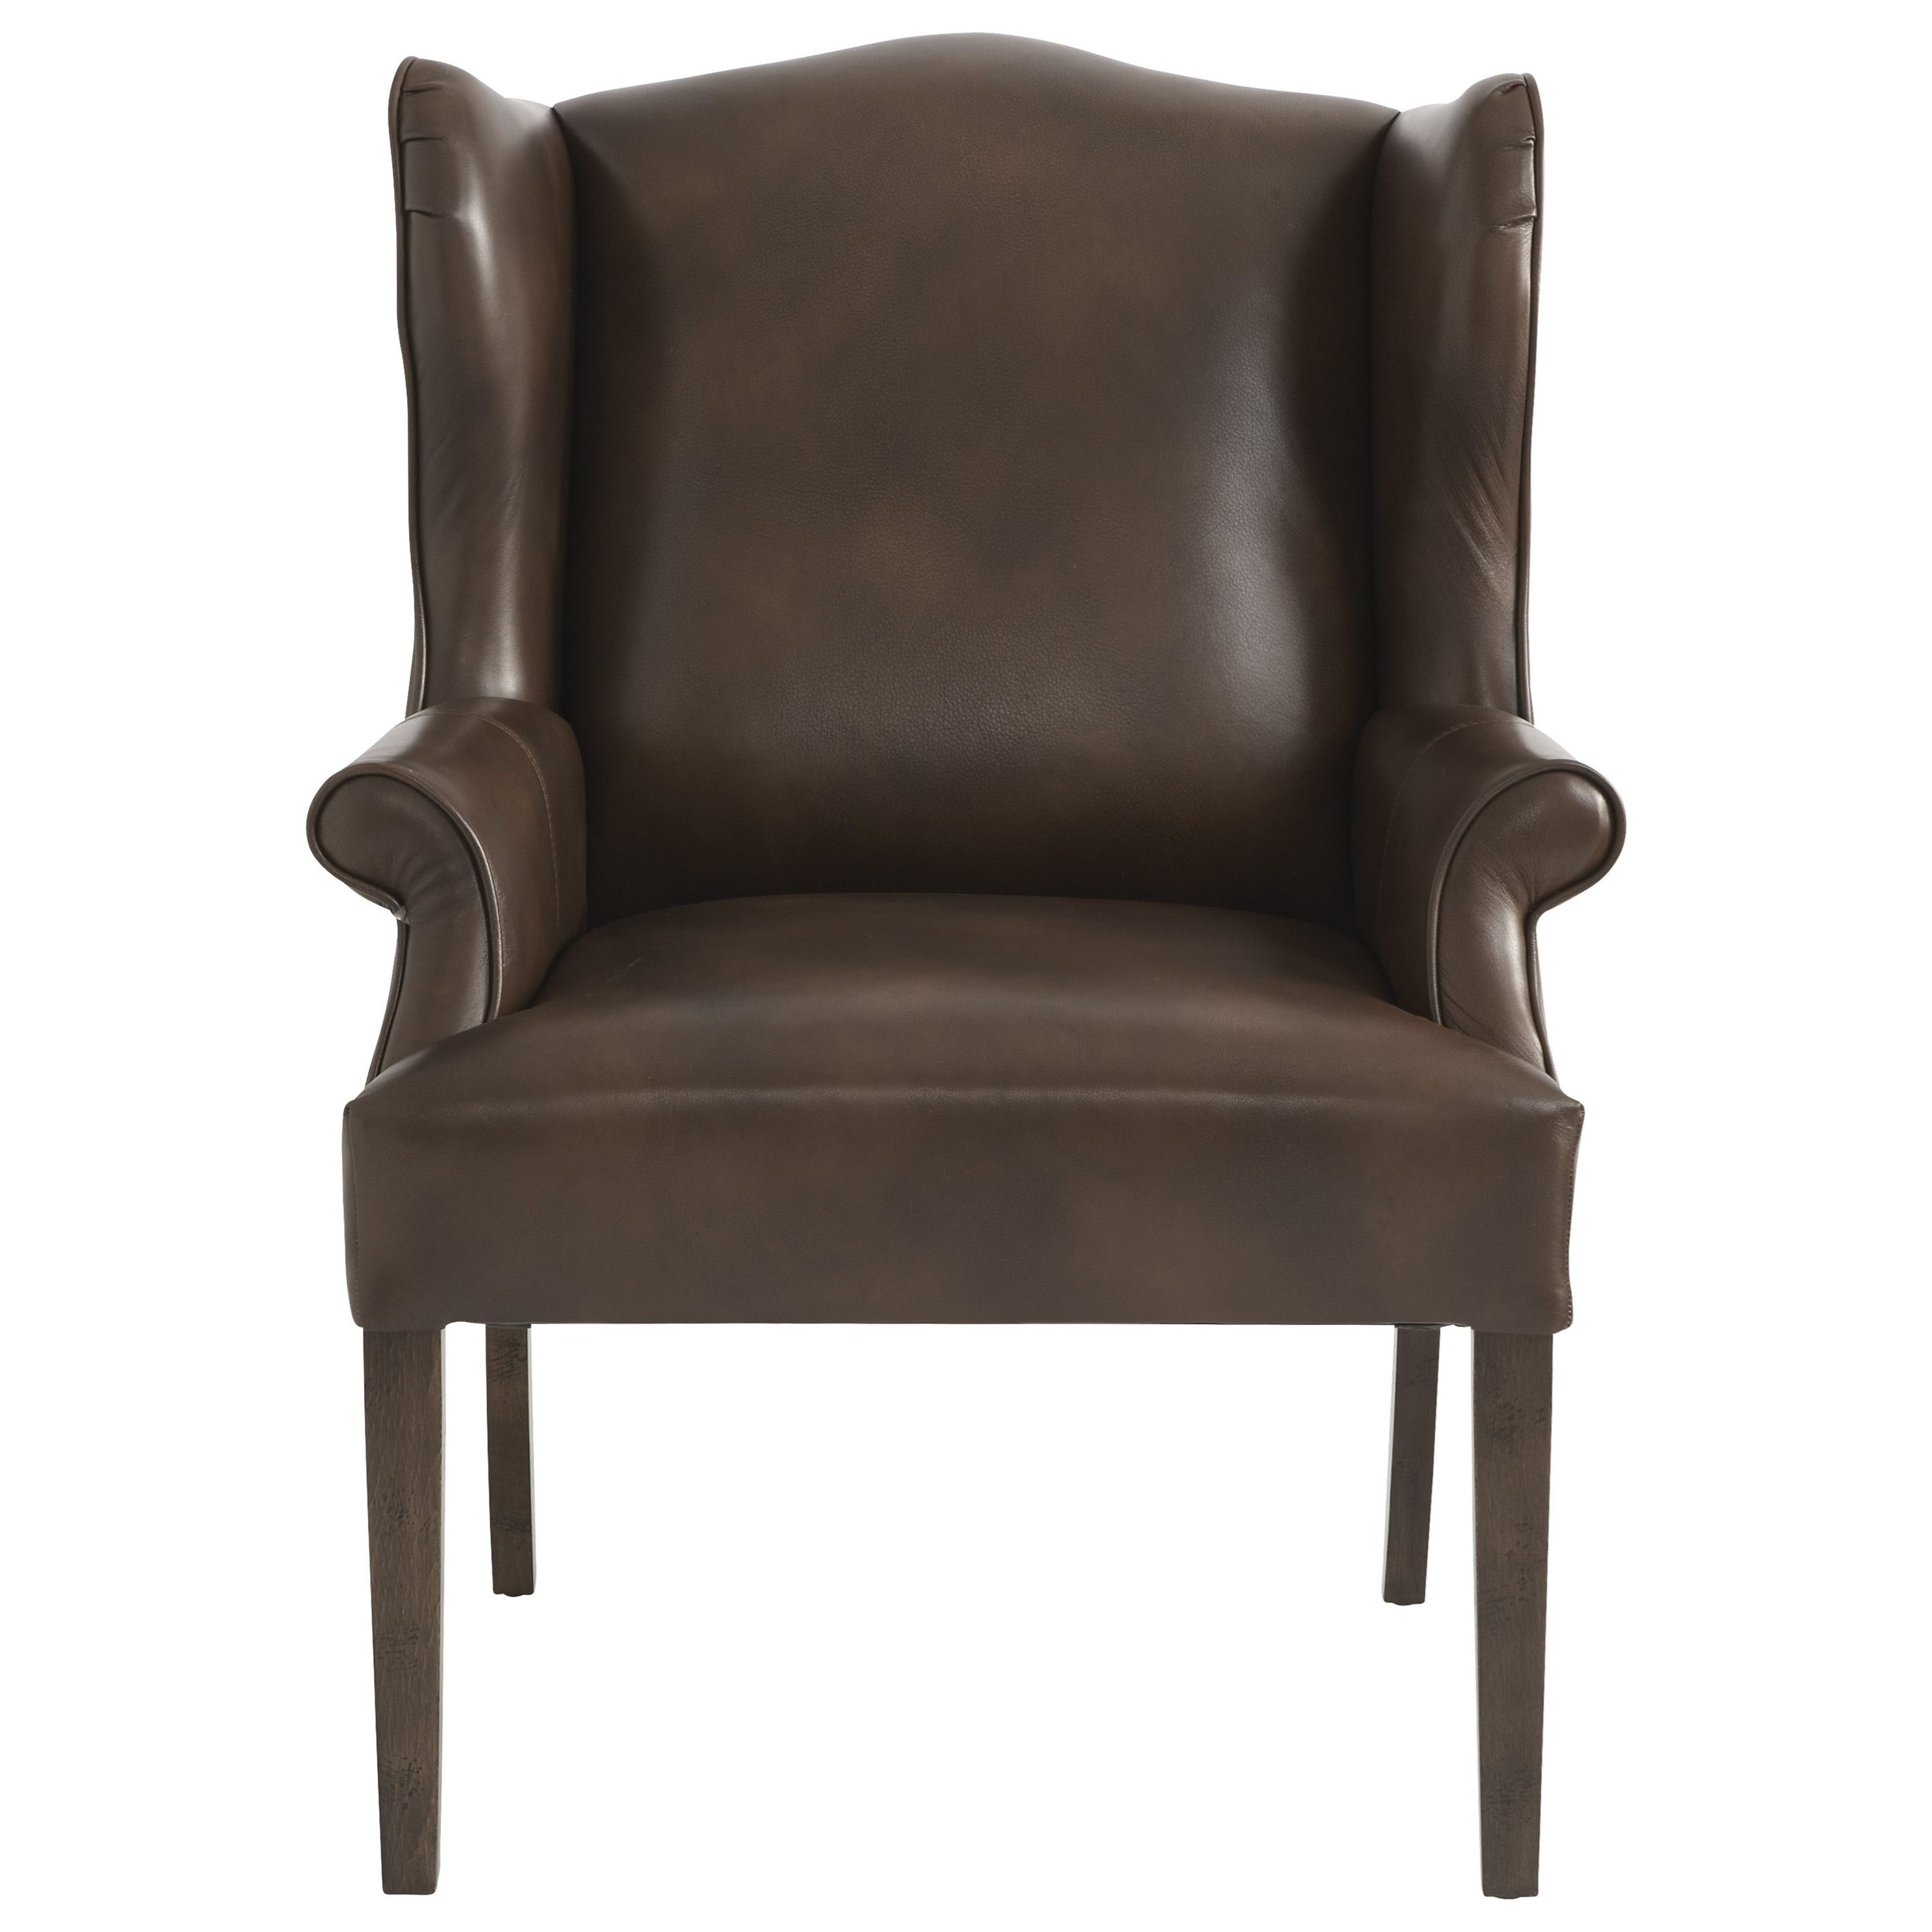 Arden Leather Dining Chair by Bassett at Williams & Kay